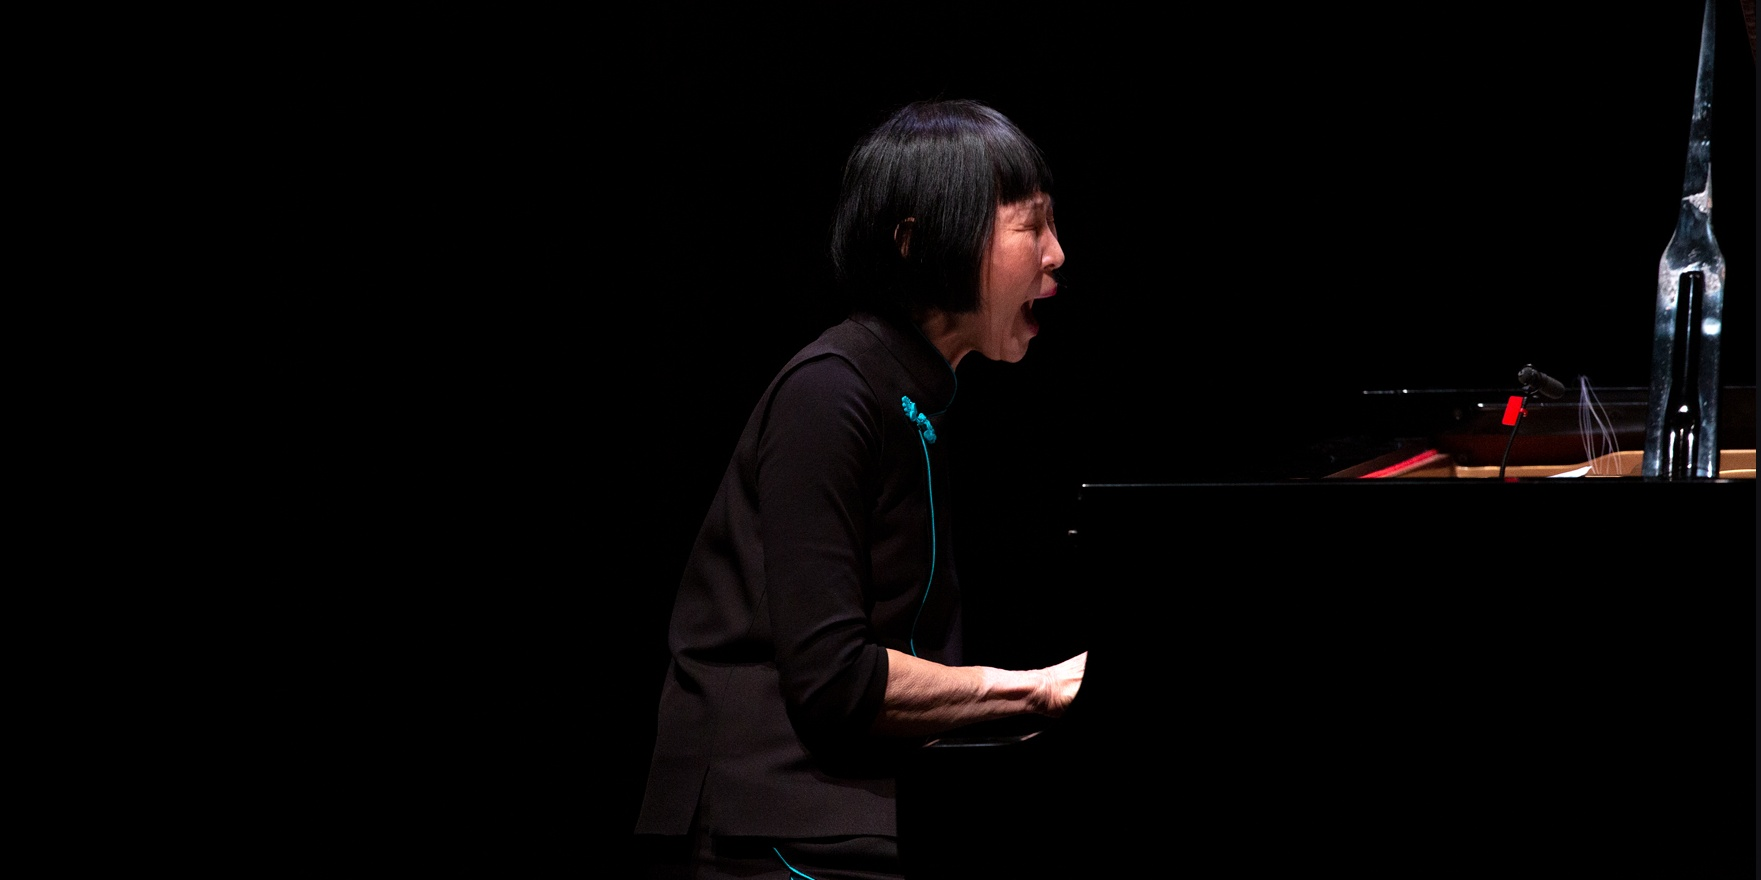 """You can make music on just about any object capable of producing sound"": An interview with toy piano virtuoso, Margaret Leng Tan"